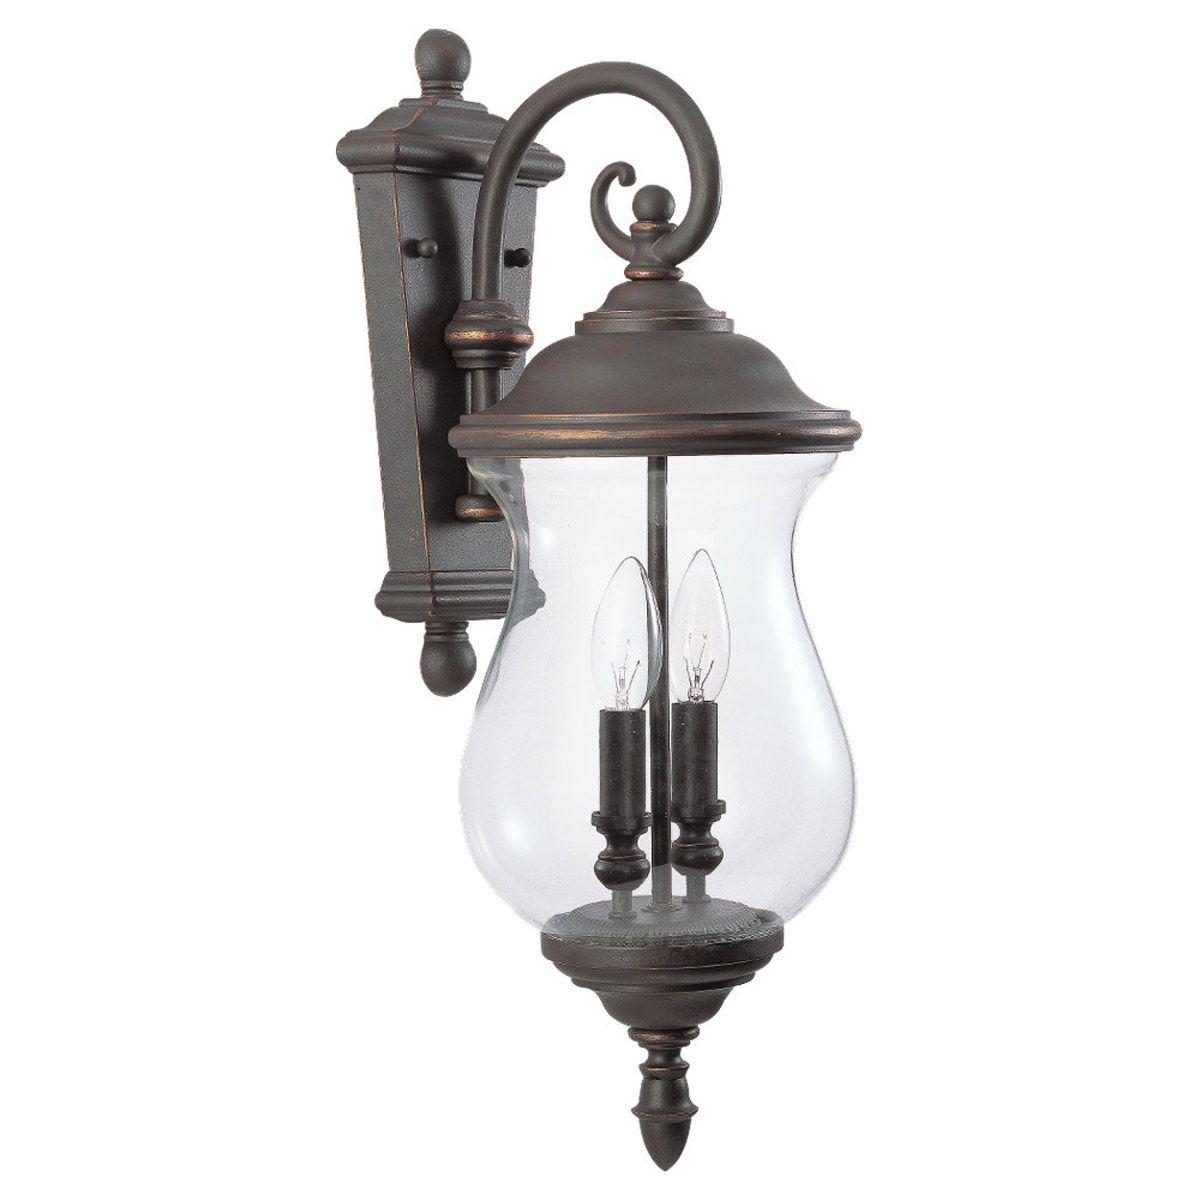 Sea Gull Lighting Triumphant 2 Light Outdoor Wall Lantern in Mojave Luster 84226-764 photo